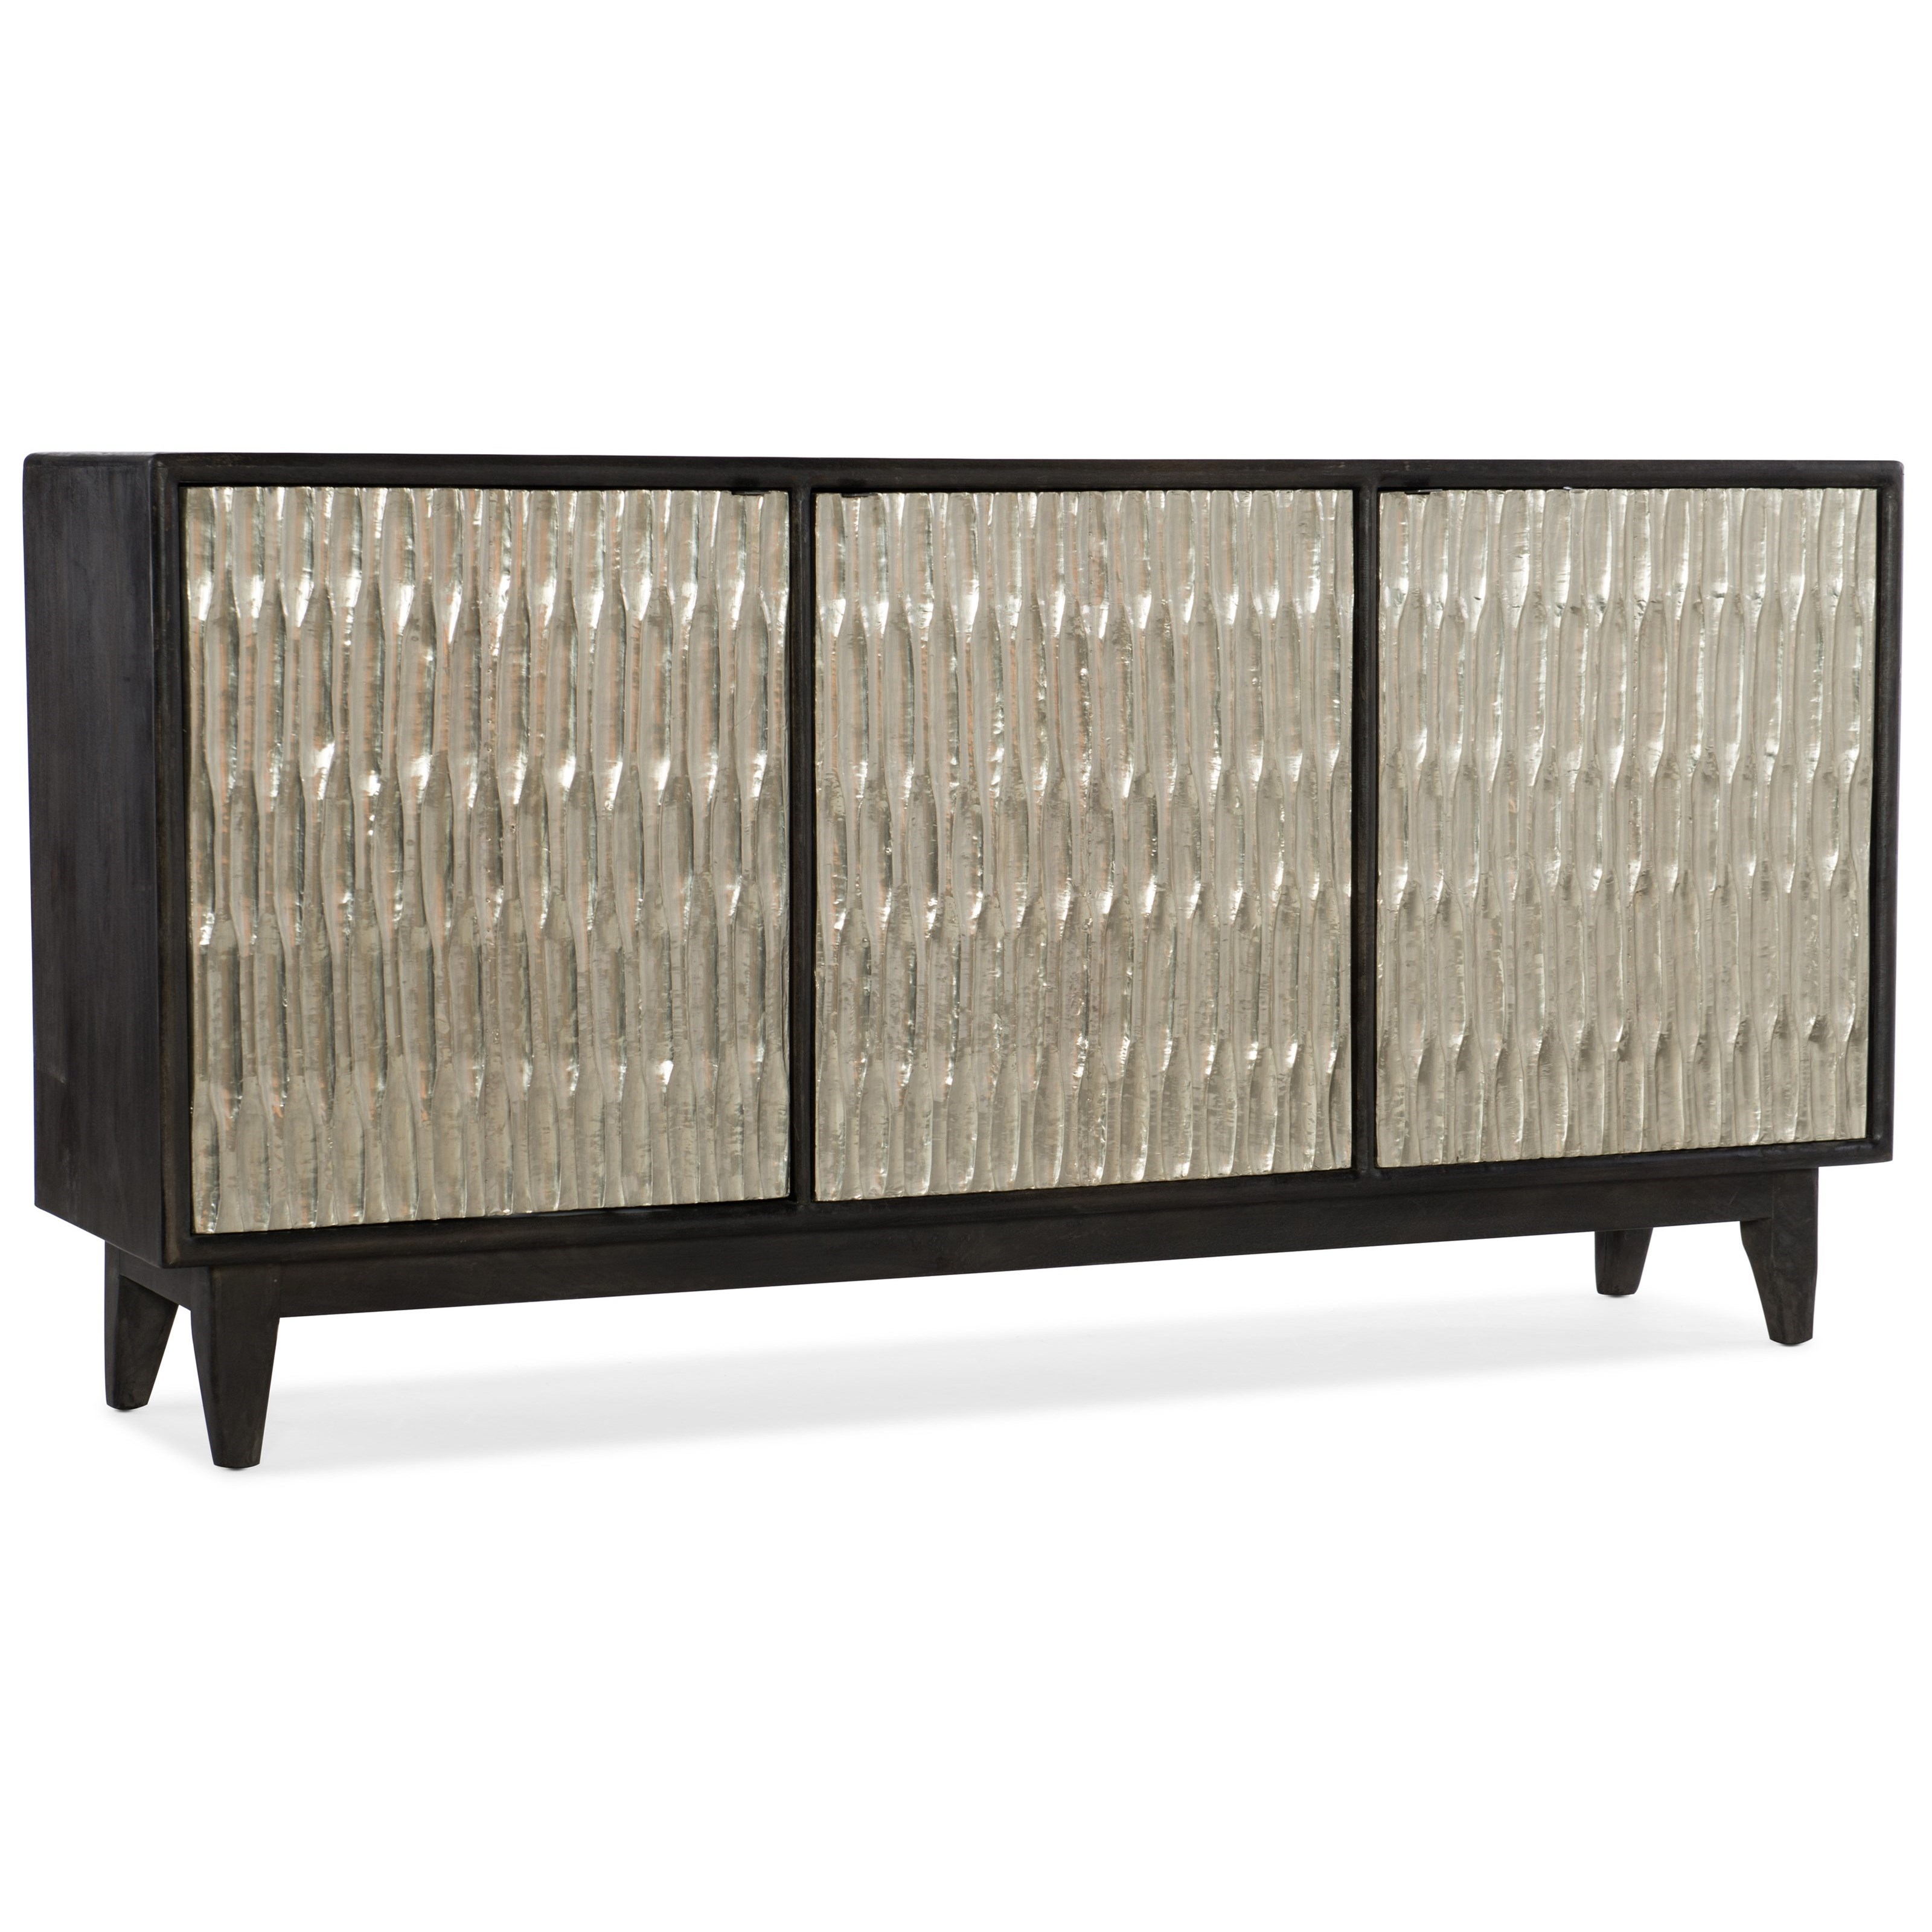 5716-85 Shimmer Three-Door Credenza by Hooker Furniture at Belfort Furniture